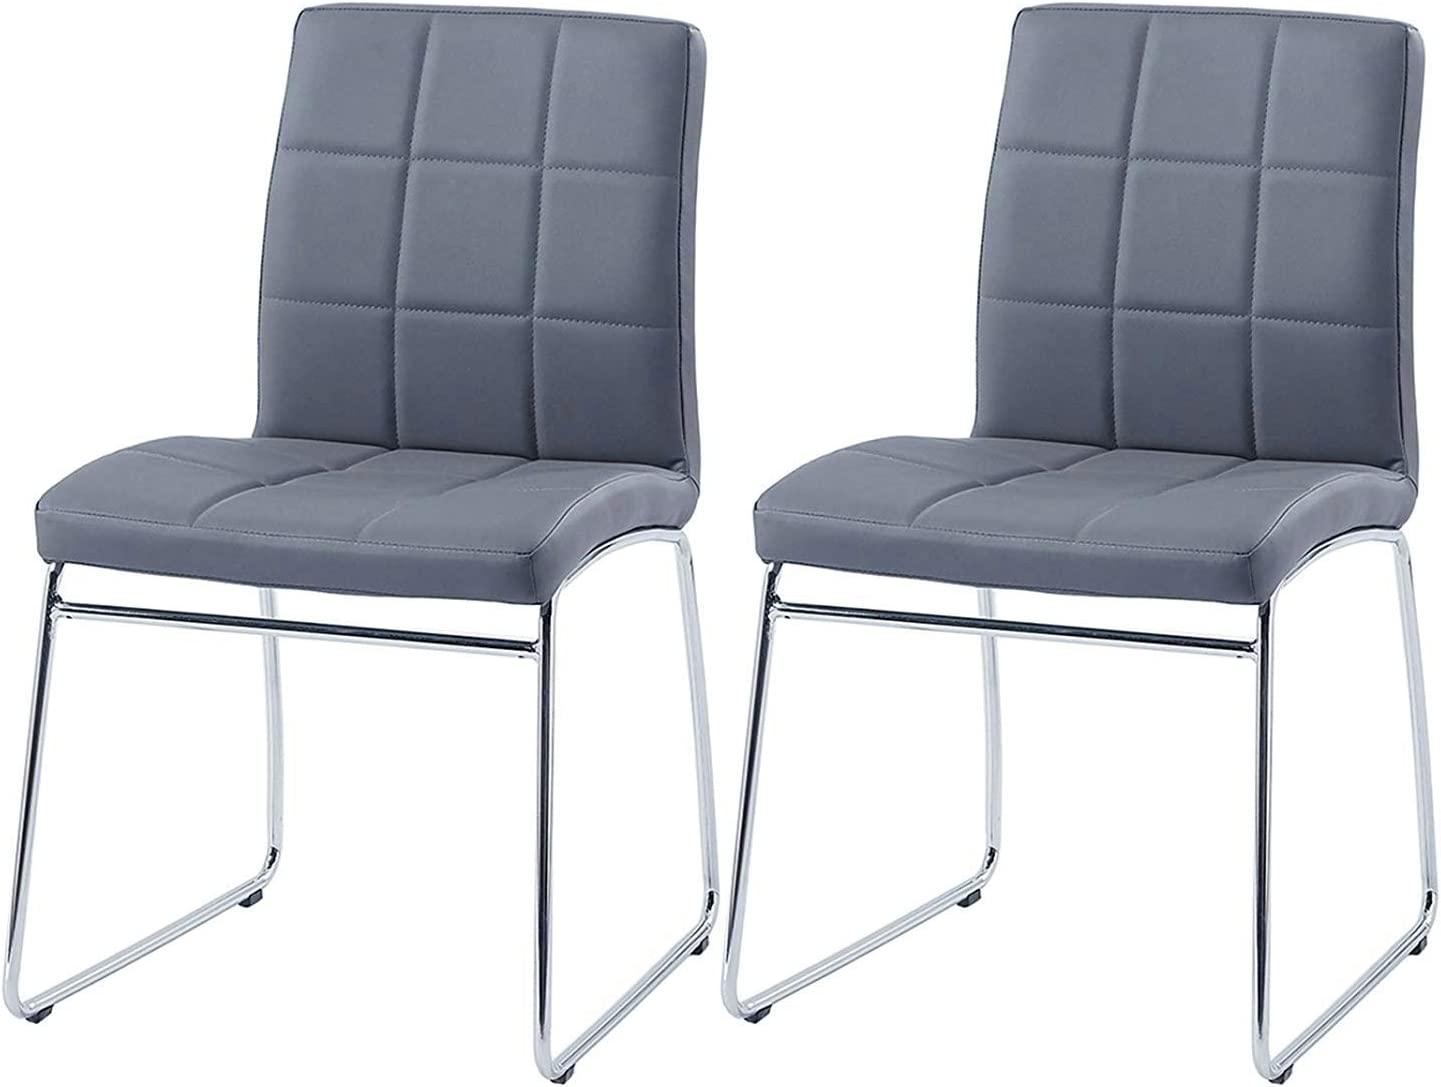 Modern Dining Chairs Set of 2,Dining Room Chairs with Faux Leather Padded Seat Back in Checkered Pattern and Sled Chrome Legs, Kitchen Side Chairs for Dining Room,Kitchen, Living Room,Gray